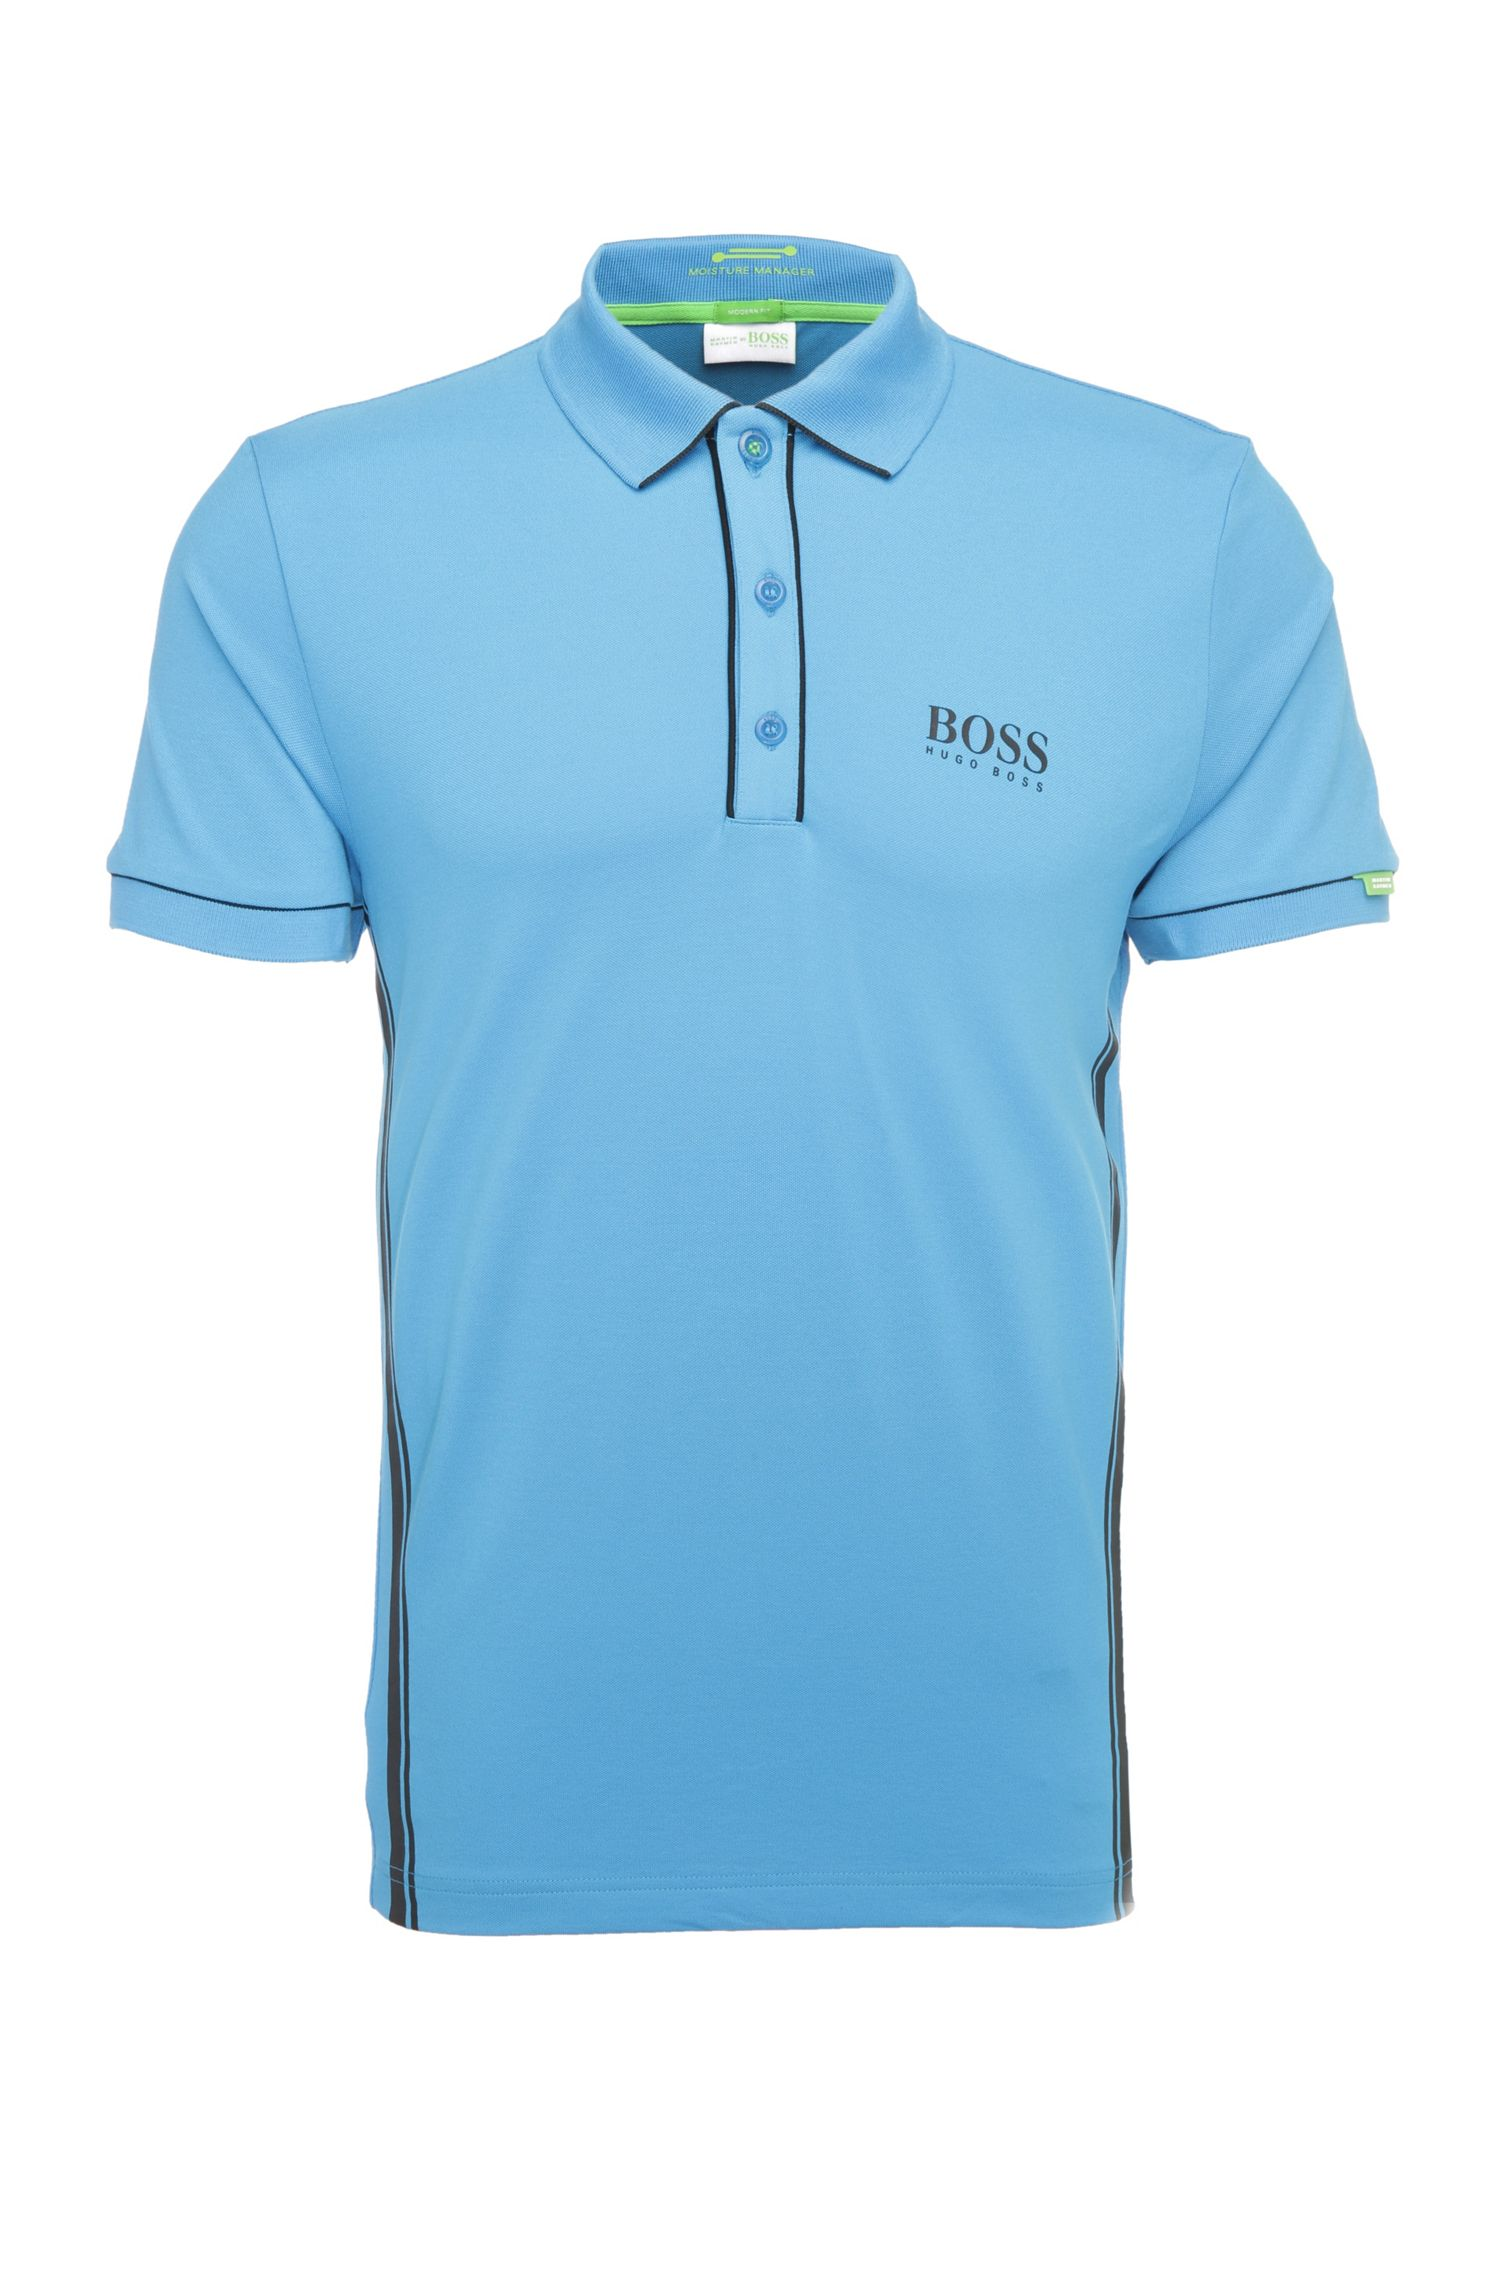 'Paddy MK'   Modern Fit, Moisture Manager Stretch Cotton Polo Shirt